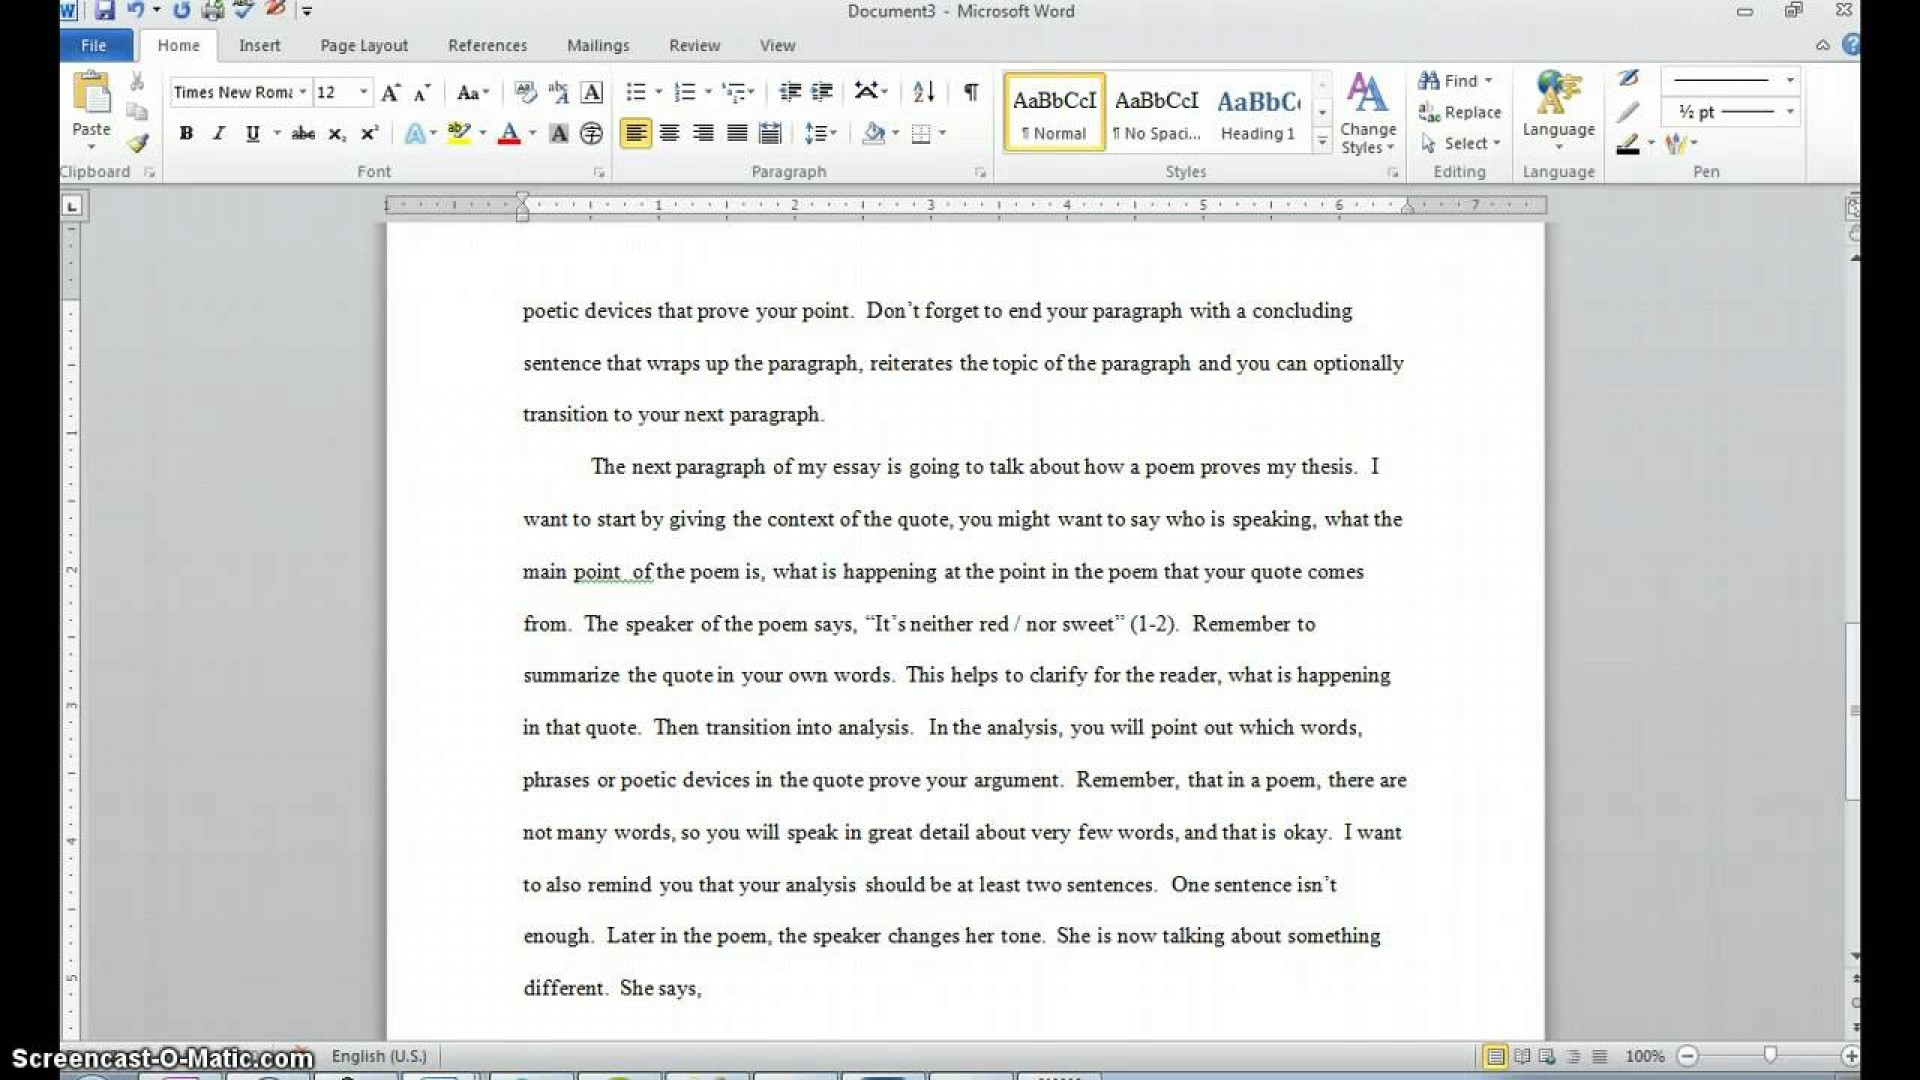 003 Essay Example Maxresdefault How To Cite Poem In Outstanding A An Put Block Quote Mla Properly Apa 1920